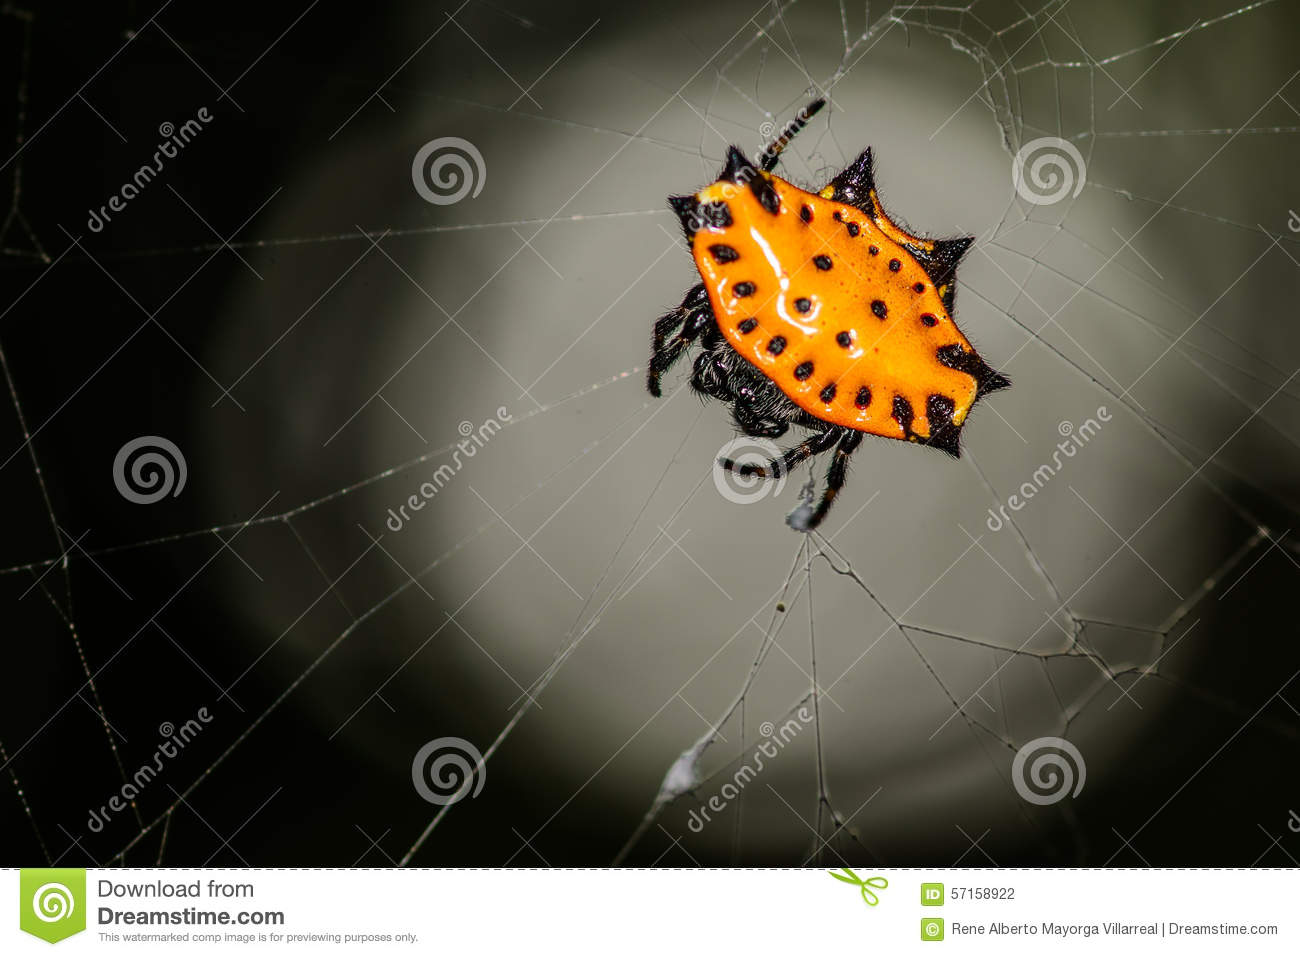 Spiny Orb Weaver clipart #12, Download drawings